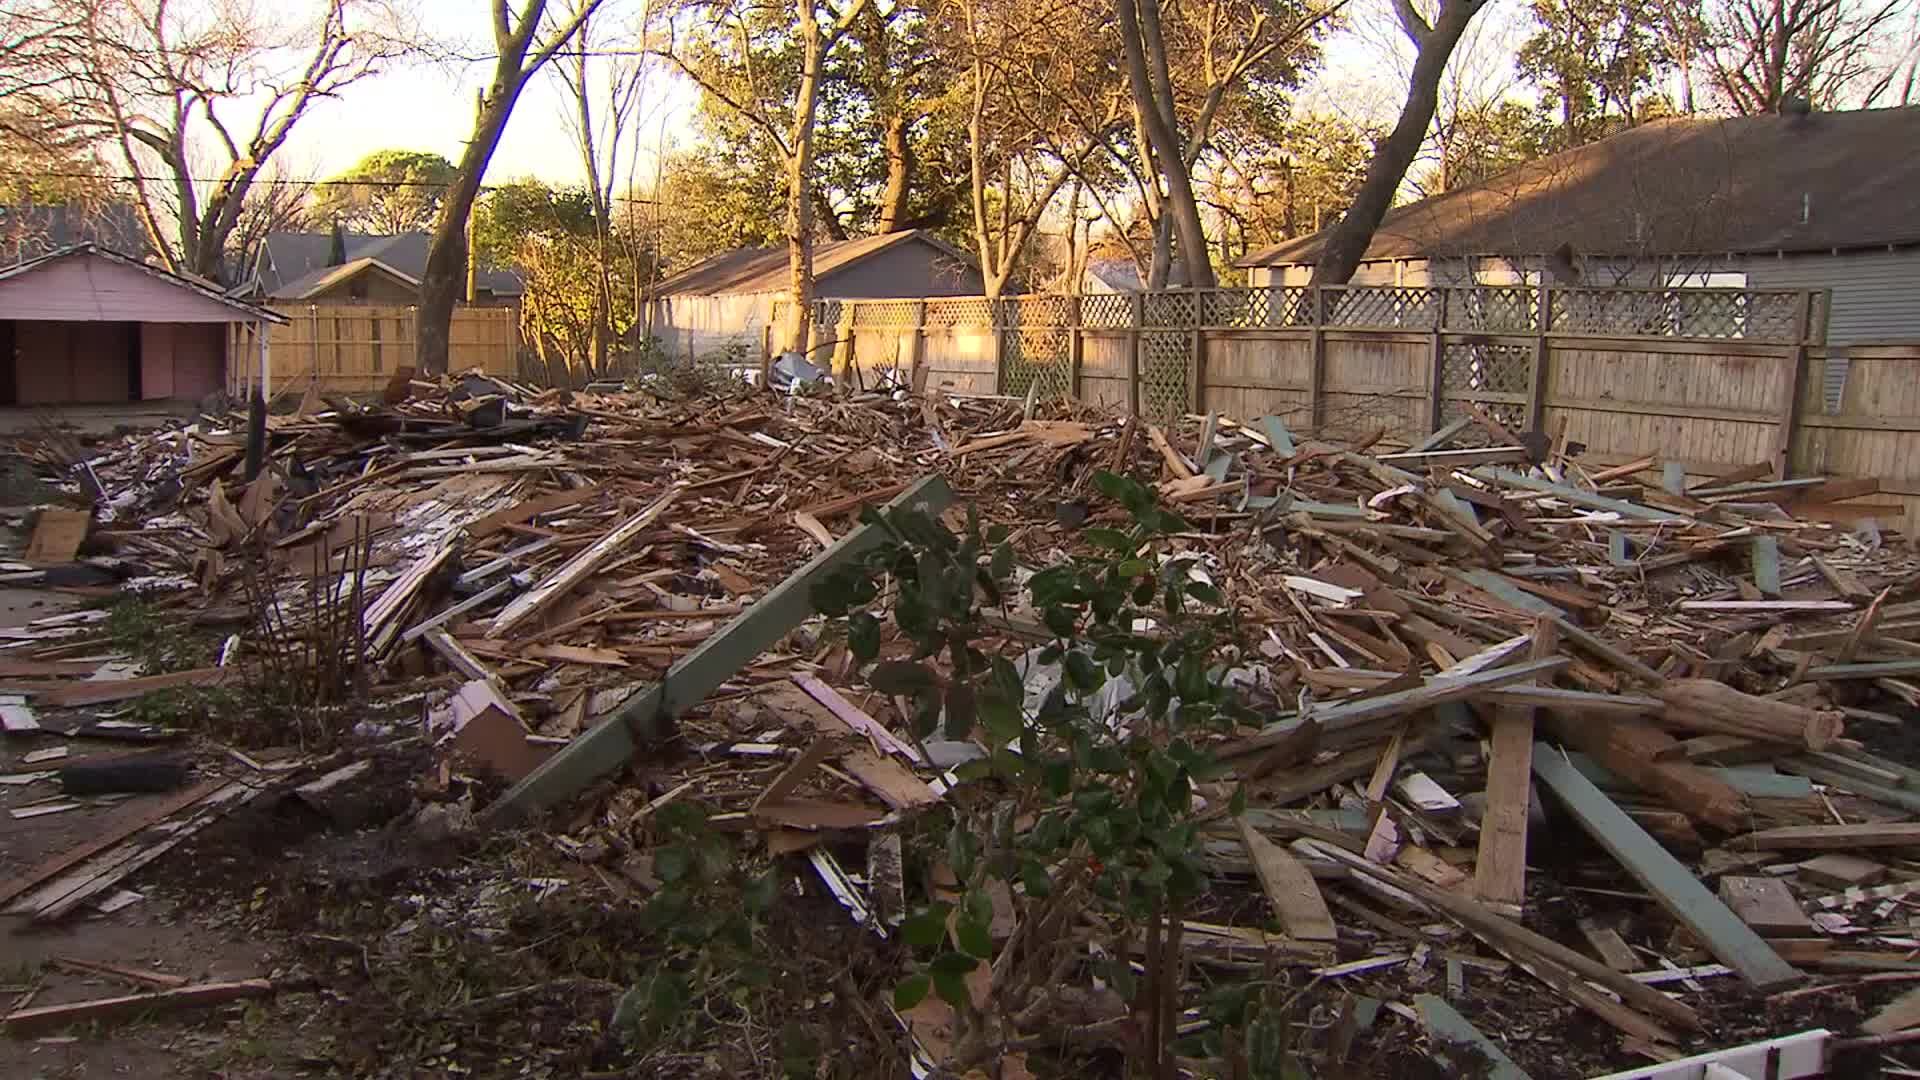 A Texas demolition company accidentally tore down the wrong house